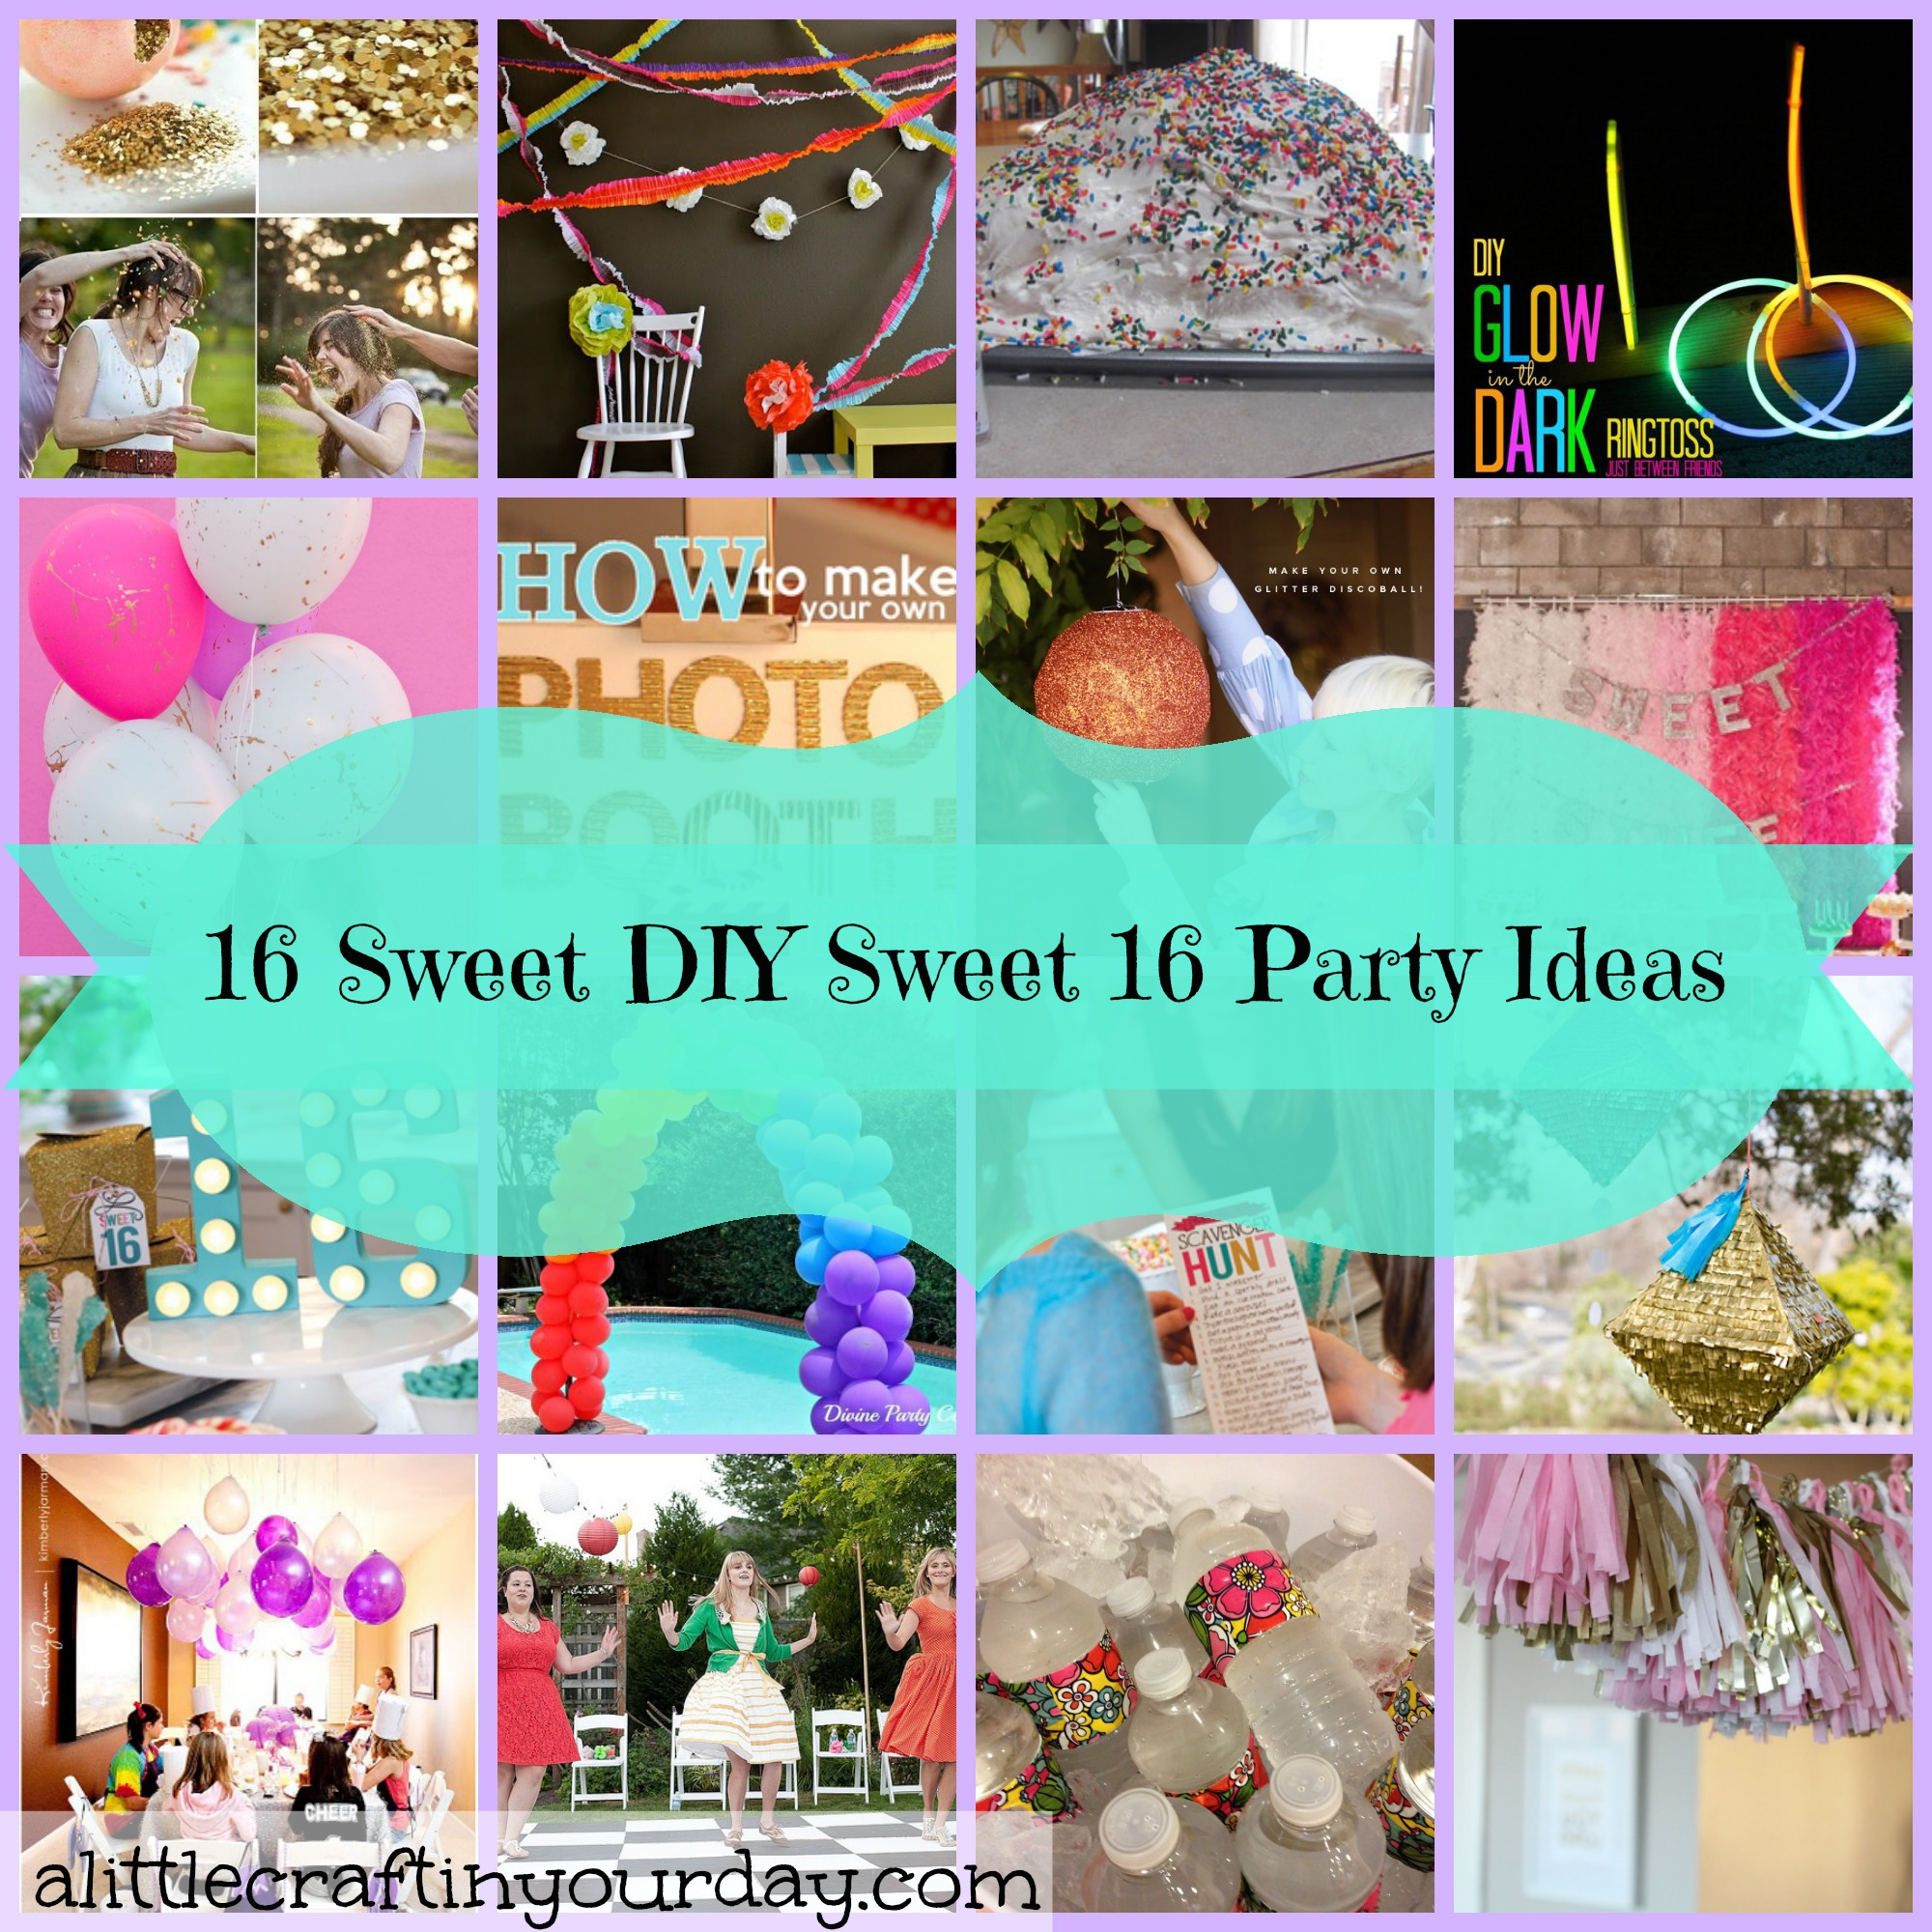 Bon 9/30 | 16 Sweet DIY Sweet 16 Party Ideas. 16_Sweet_DIY_Sweet_16_Party_Ideas